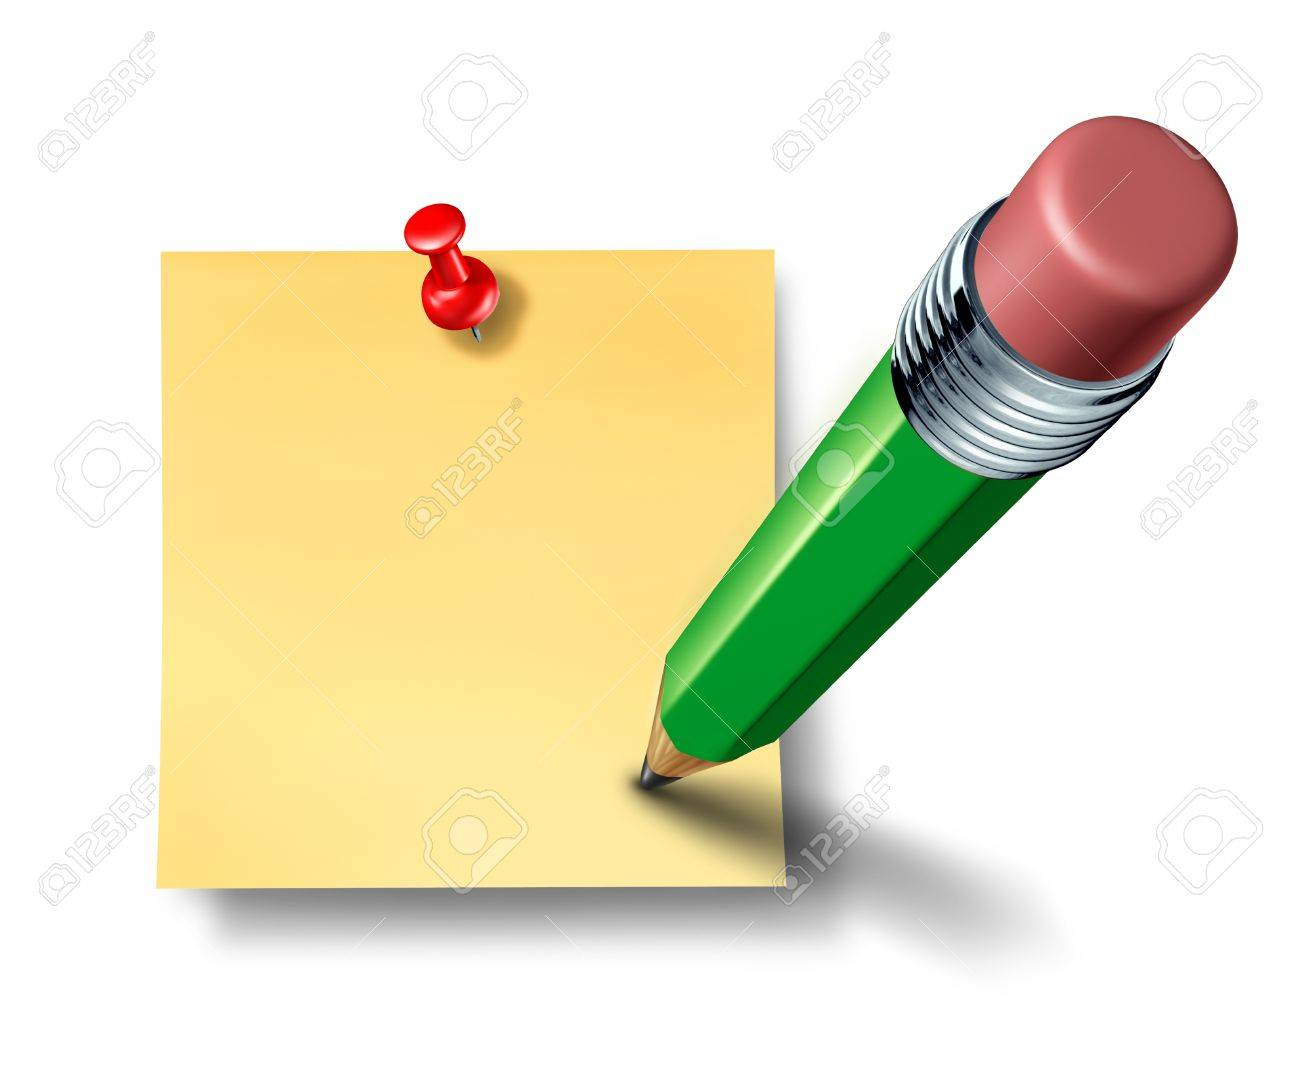 Writing an on a blank office note with a green pencil representing the symbol and concept of communication and marketing when promoting an important reminder or business message to employees and staff to educate and notify. Stock Photo - 11359784